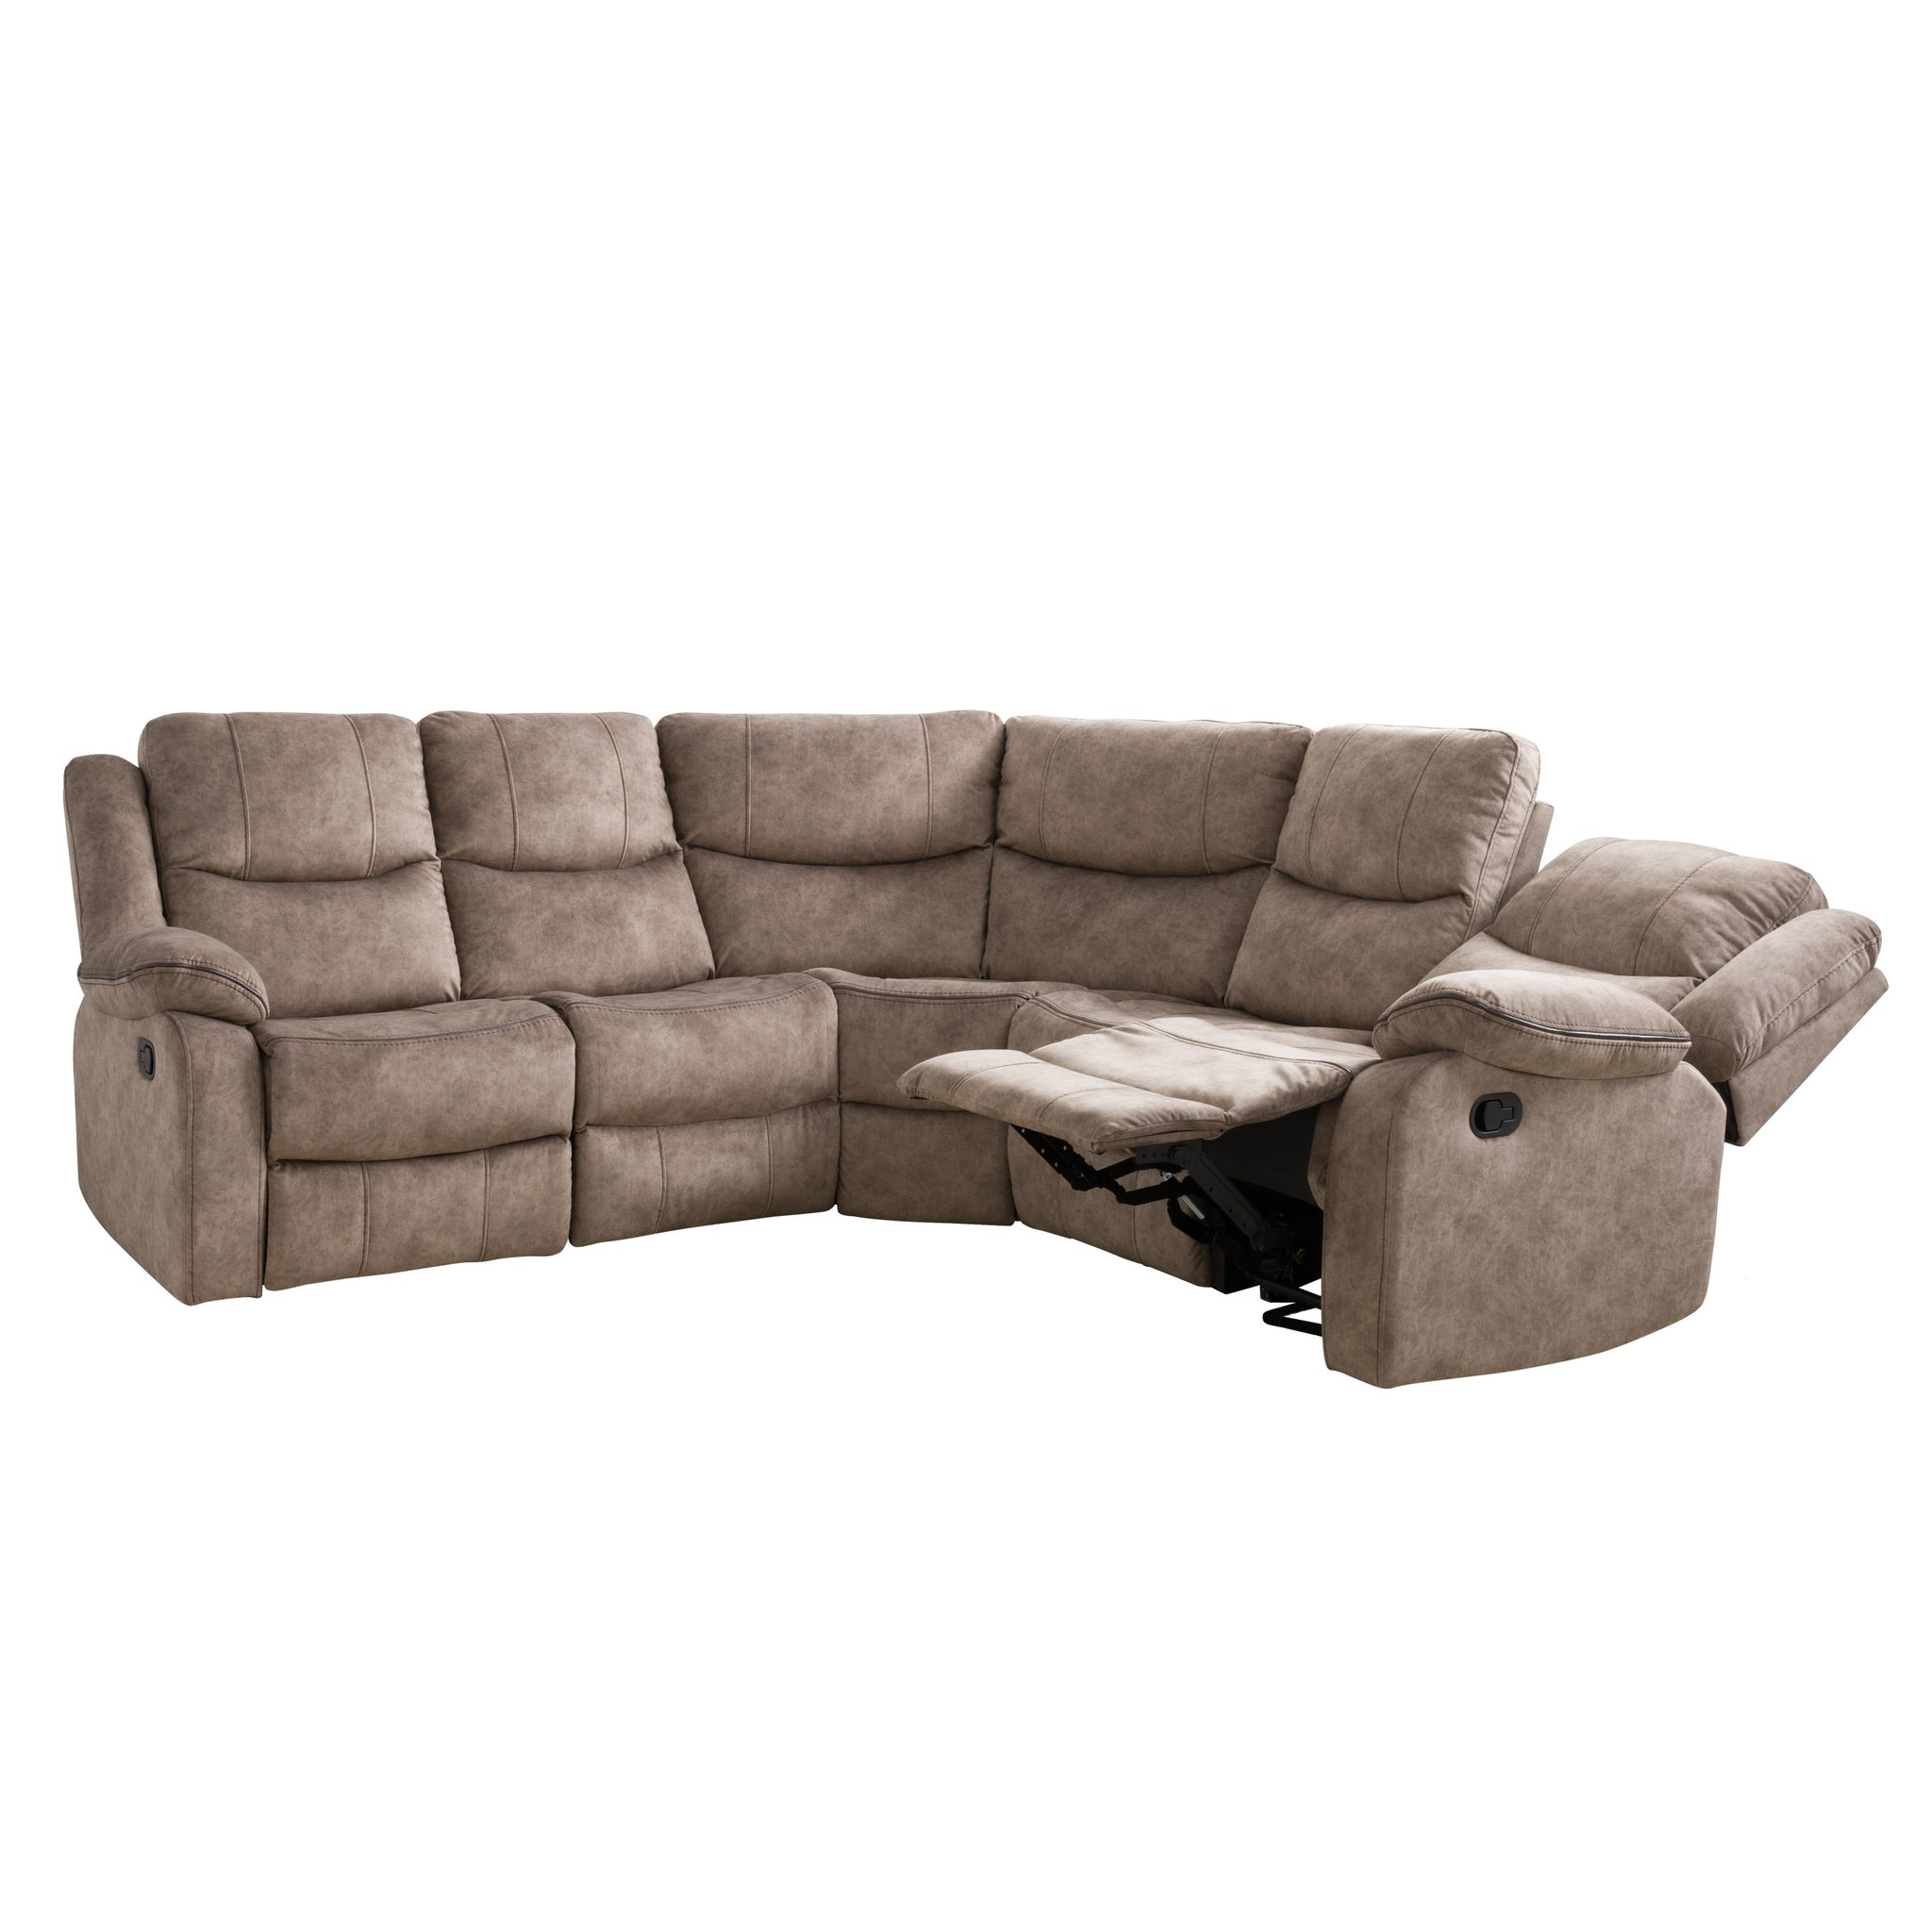 Picture of: Syracuse Curved Modular Reclining Sofa Sectional Fabric 5pc Clearanc Corliving Furniture